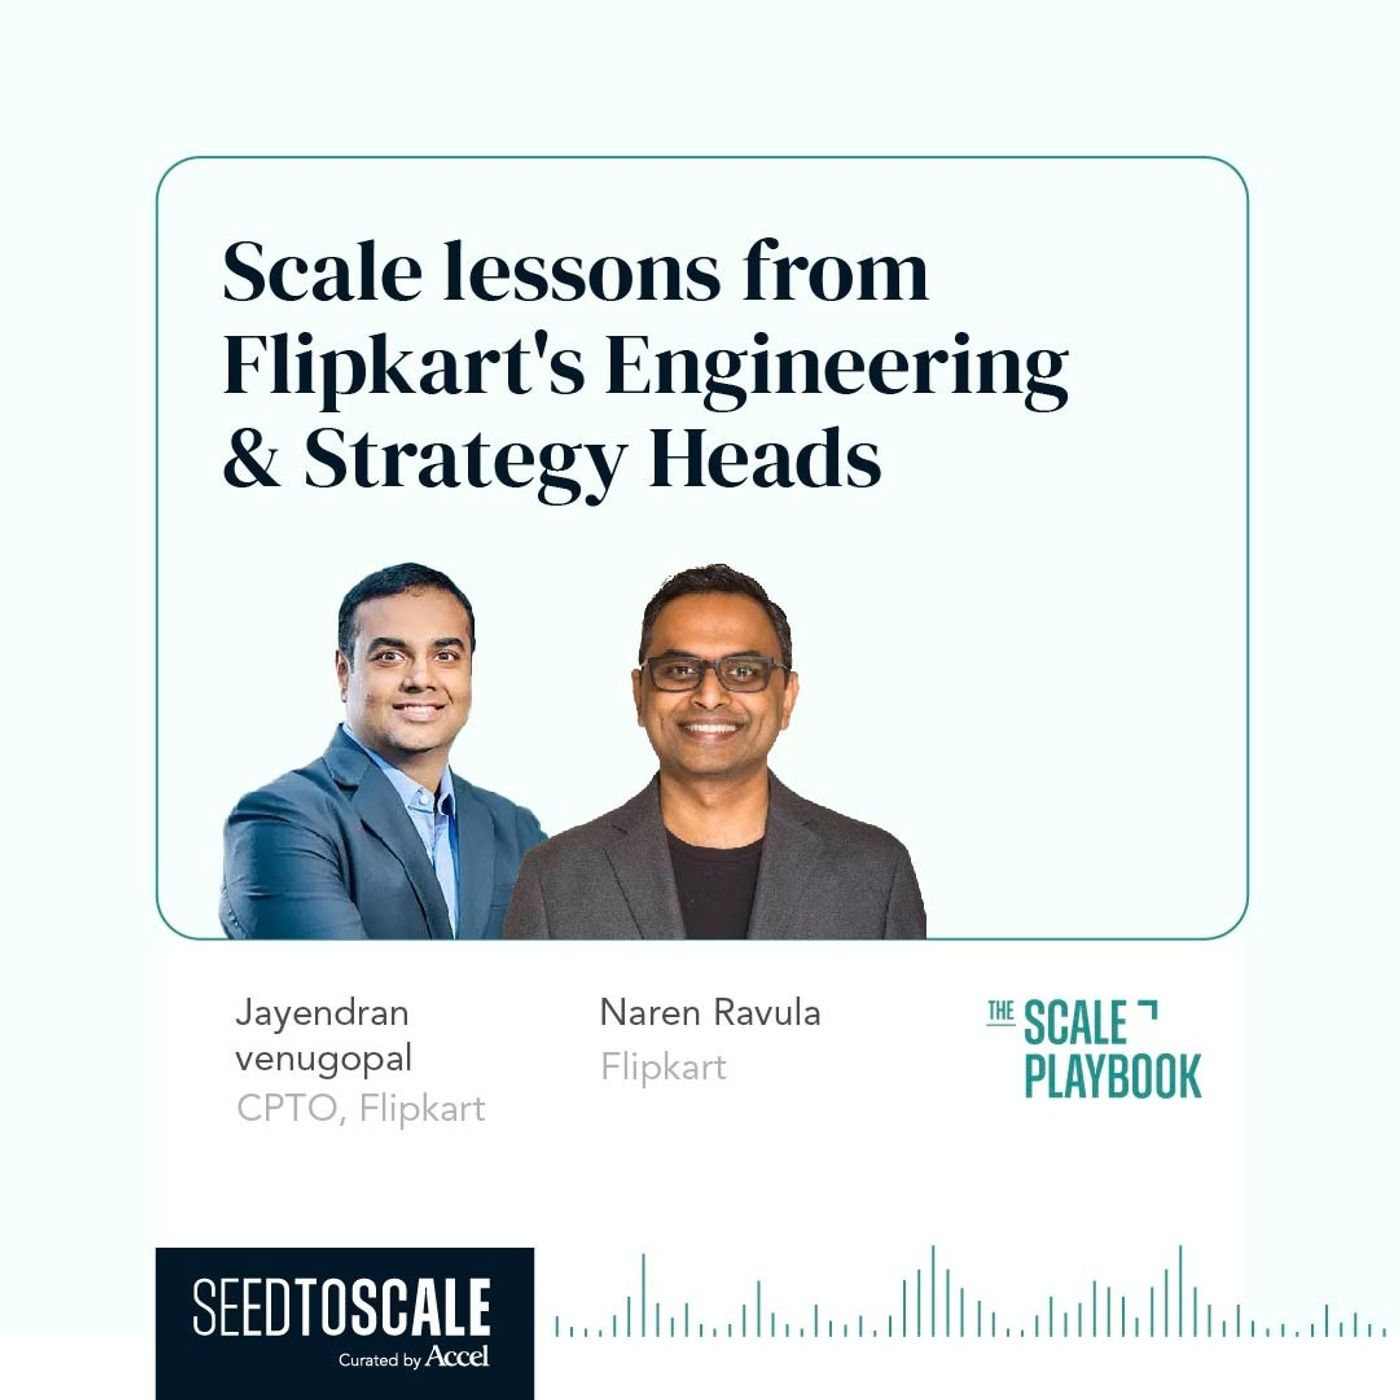 INSIGHTS #58 - The Scale Playbook: Scale lessons from Flipkart's Engineering & Strategy Heads